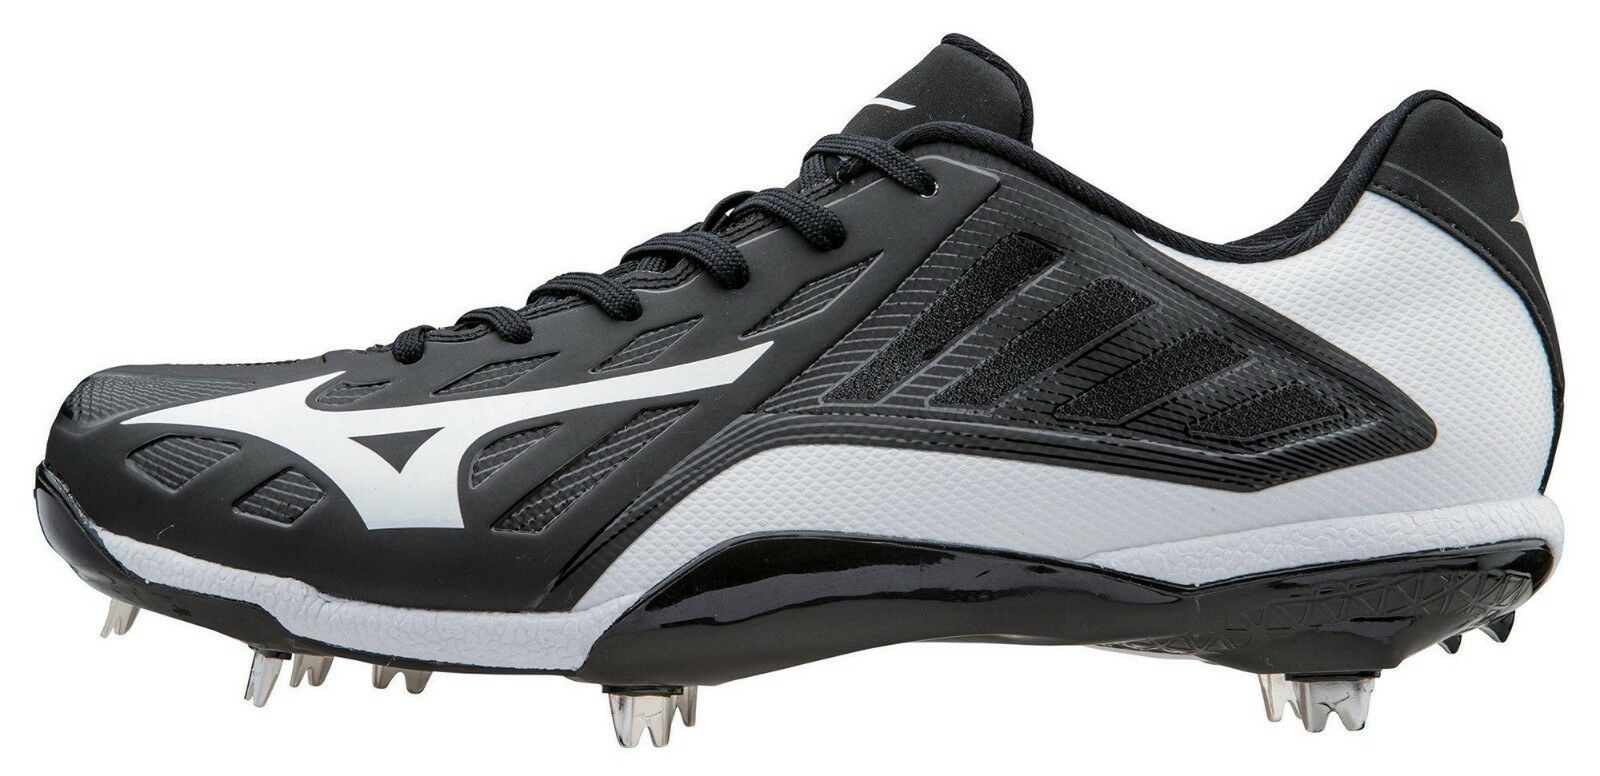 NEW  MEN'S MIZUNO HEIST IQ LOW CLEATS size 10.5